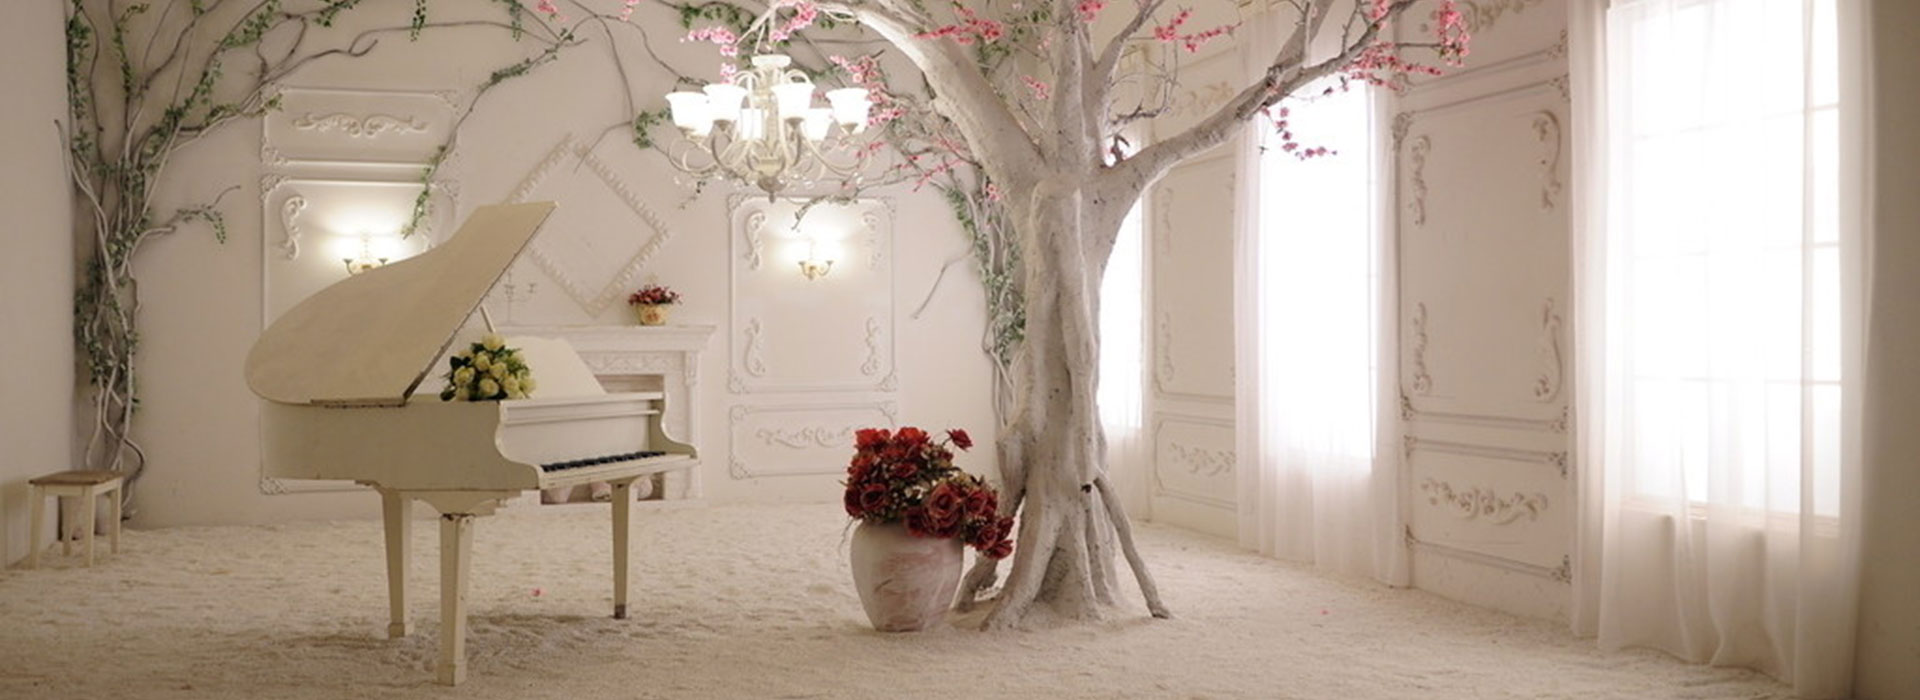 Fall In Love Wallpaper Free Download Continental Romantic Aesthetic Background Piano Window